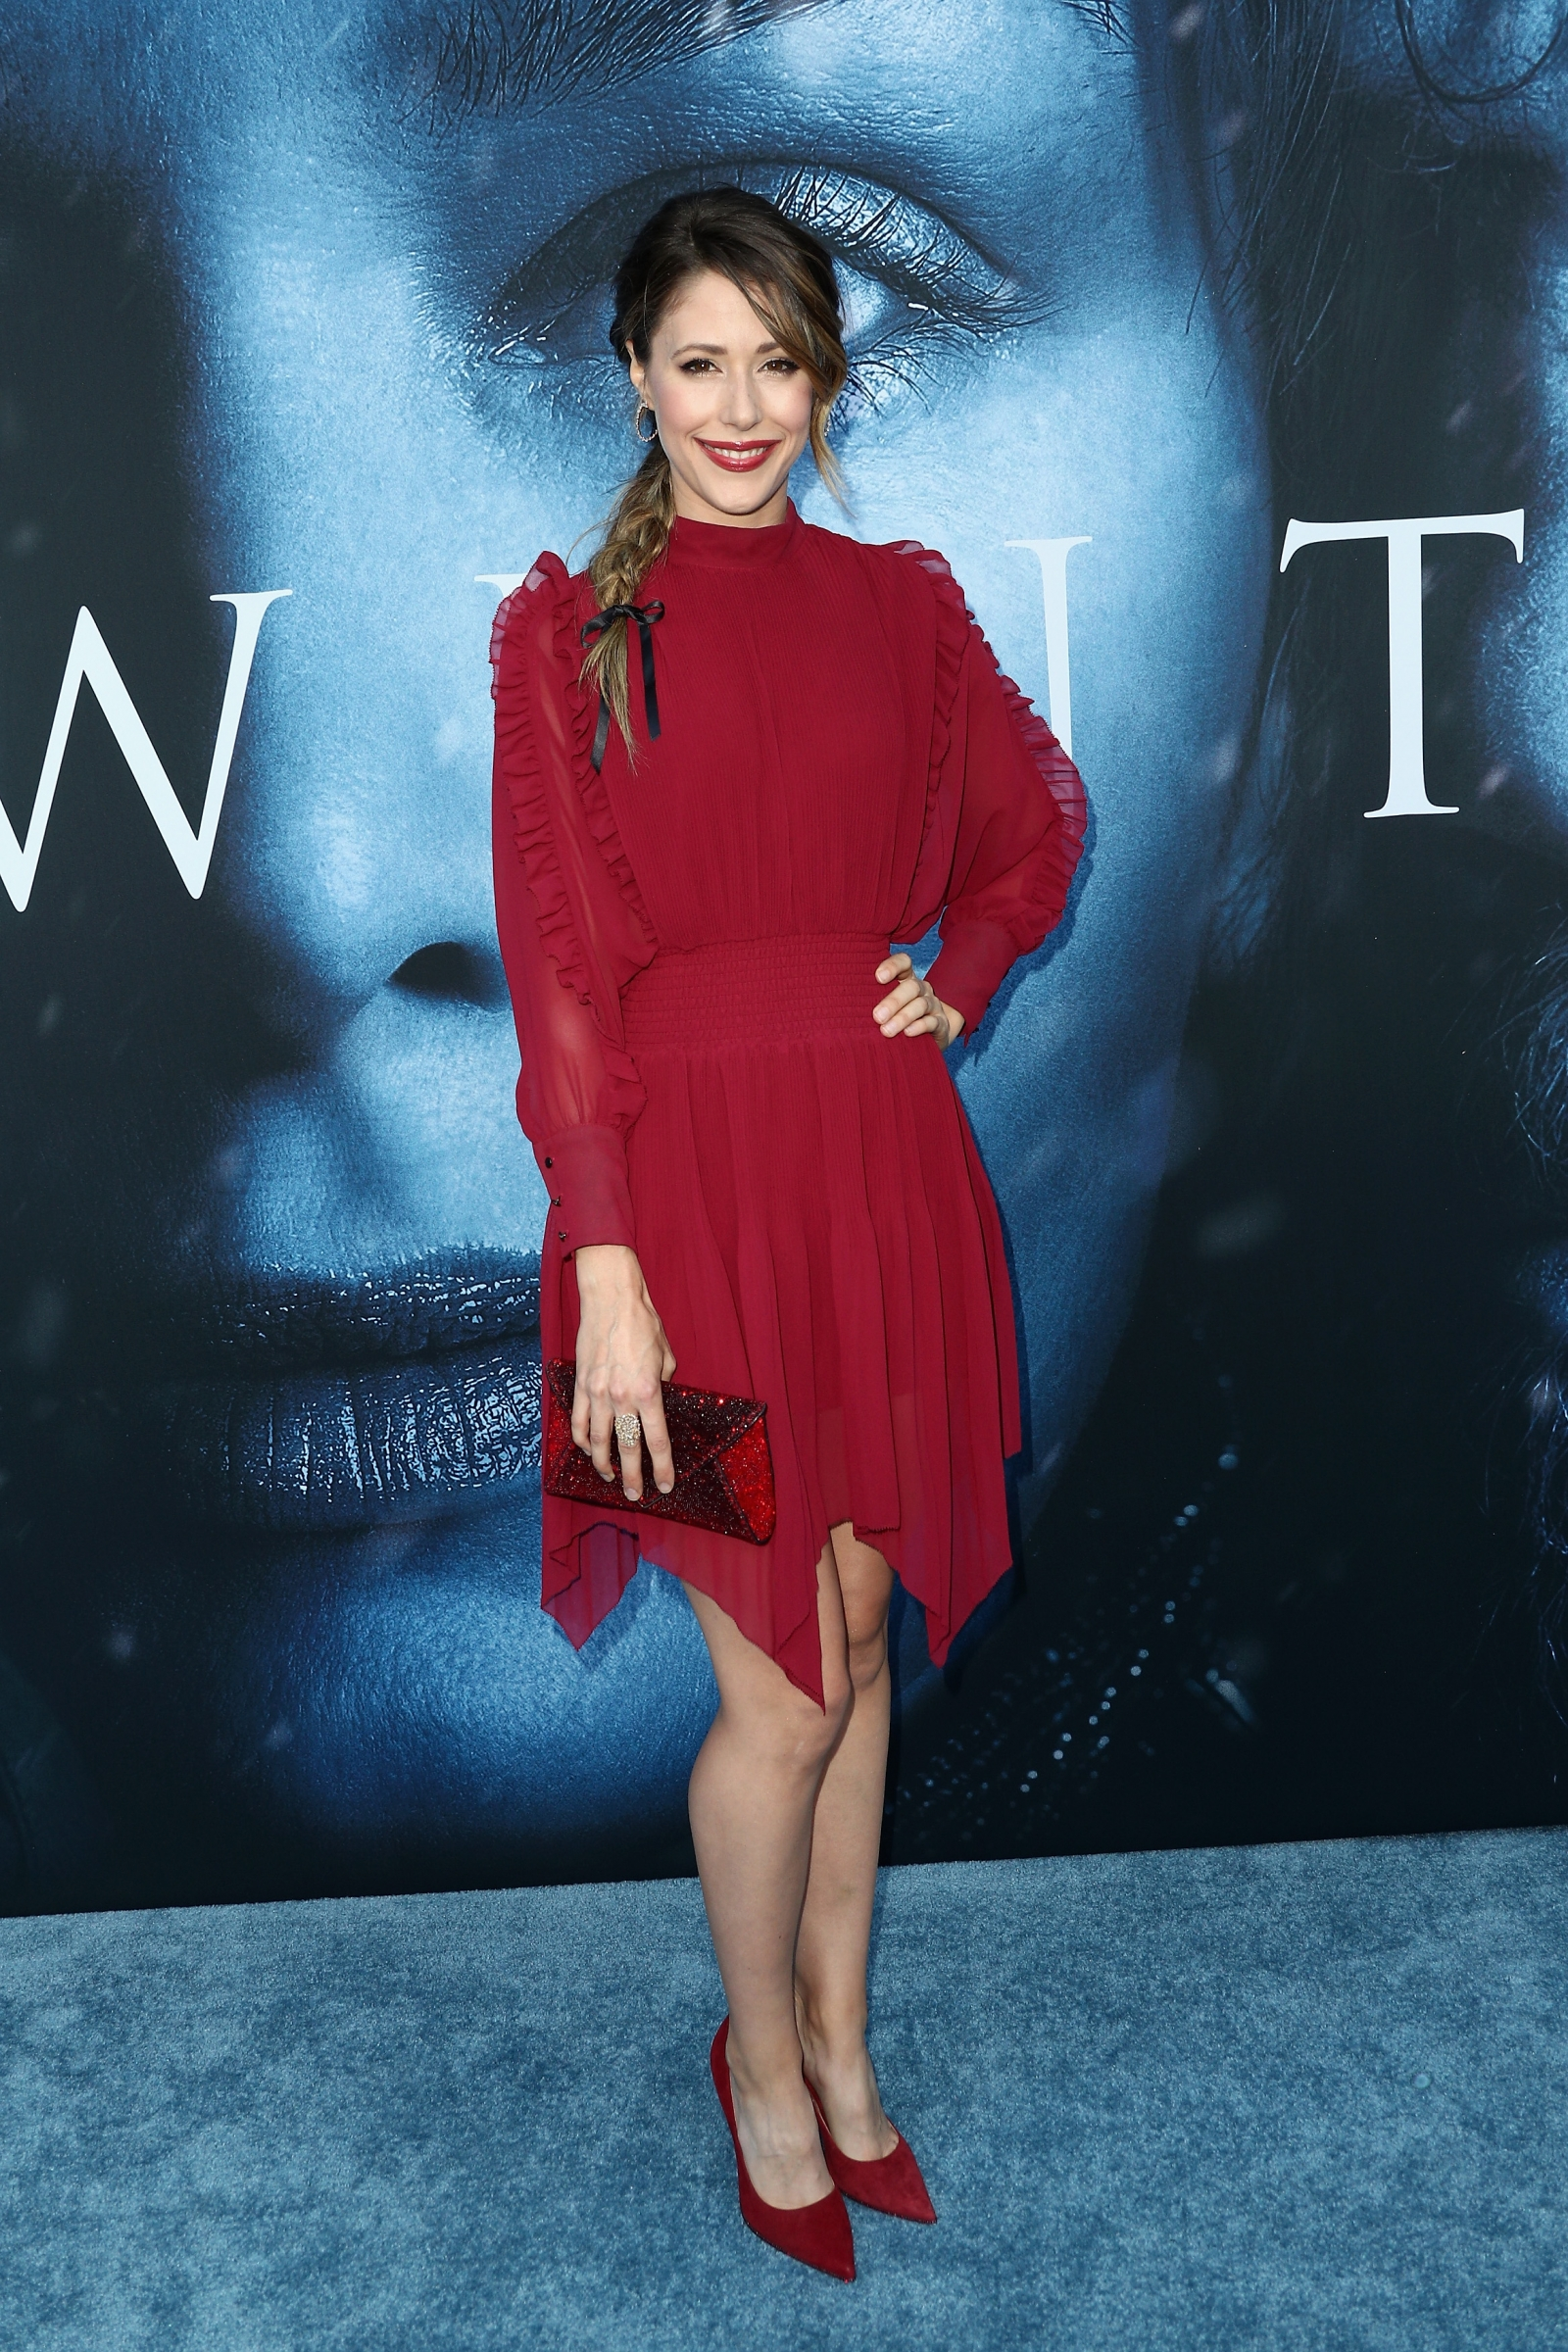 Game of Thrones LA premiere